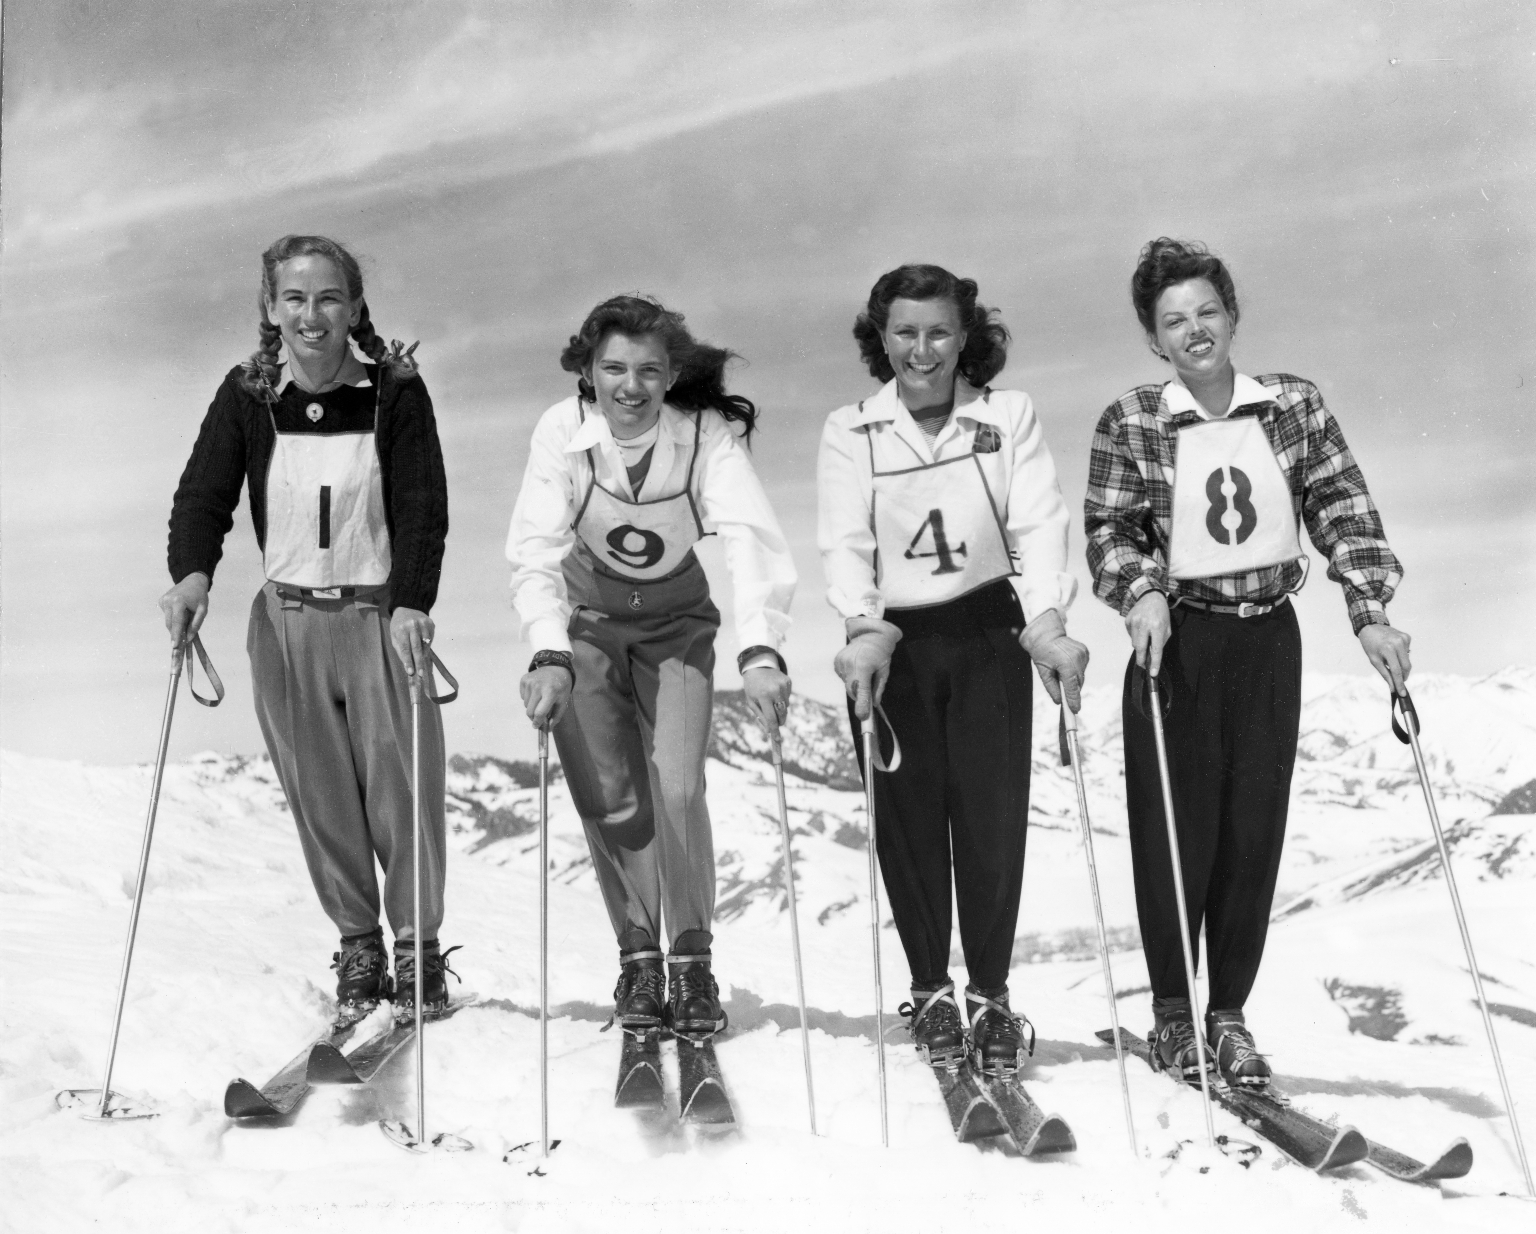 Four members of the 1948 United States Olympic Ski team, women's